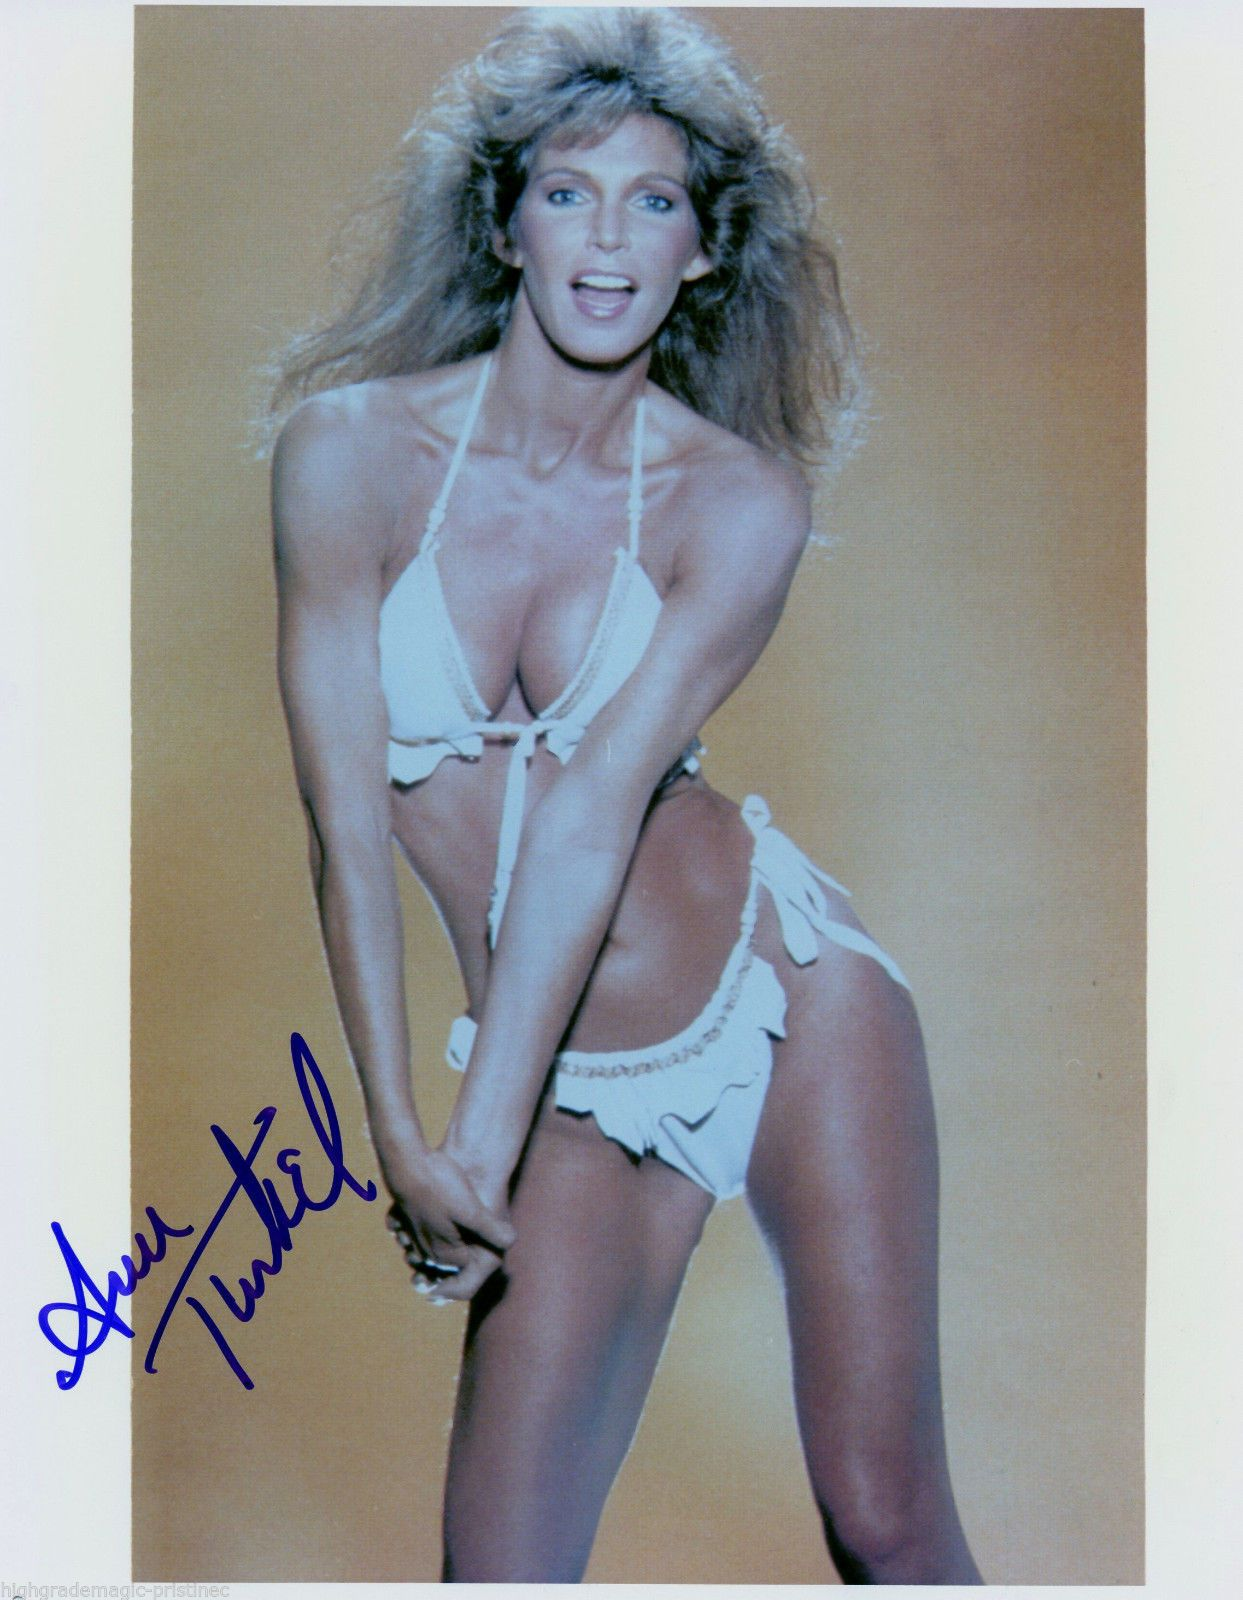 da25d9dd0d31b Ann Turkel Autographed Signed 8x10 Color Press Photo Sexy in White Bikini